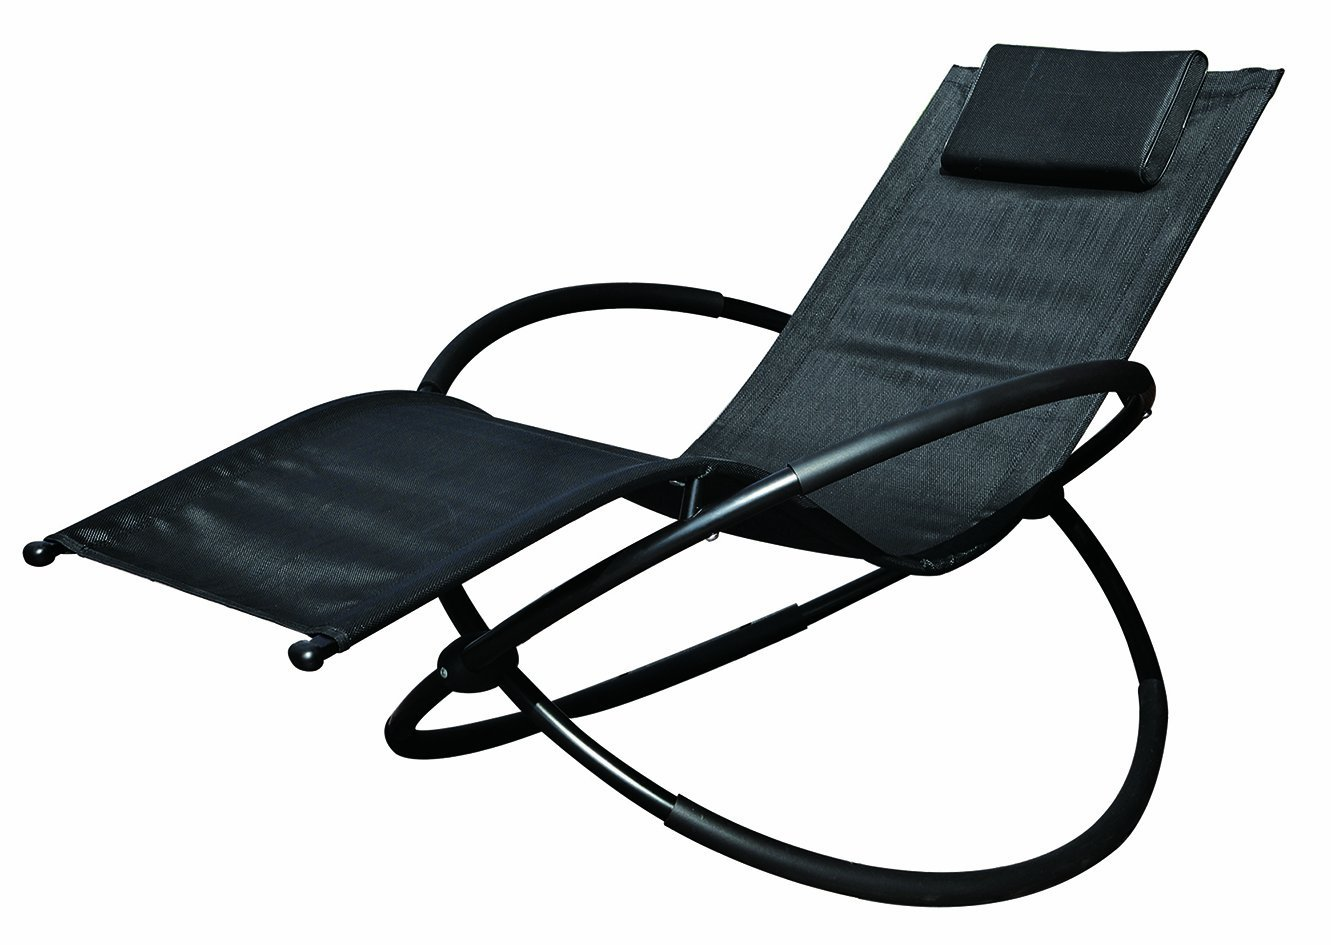 Garden kraft 19180 Benross Louis moon Rocker Lounger Garden Chair